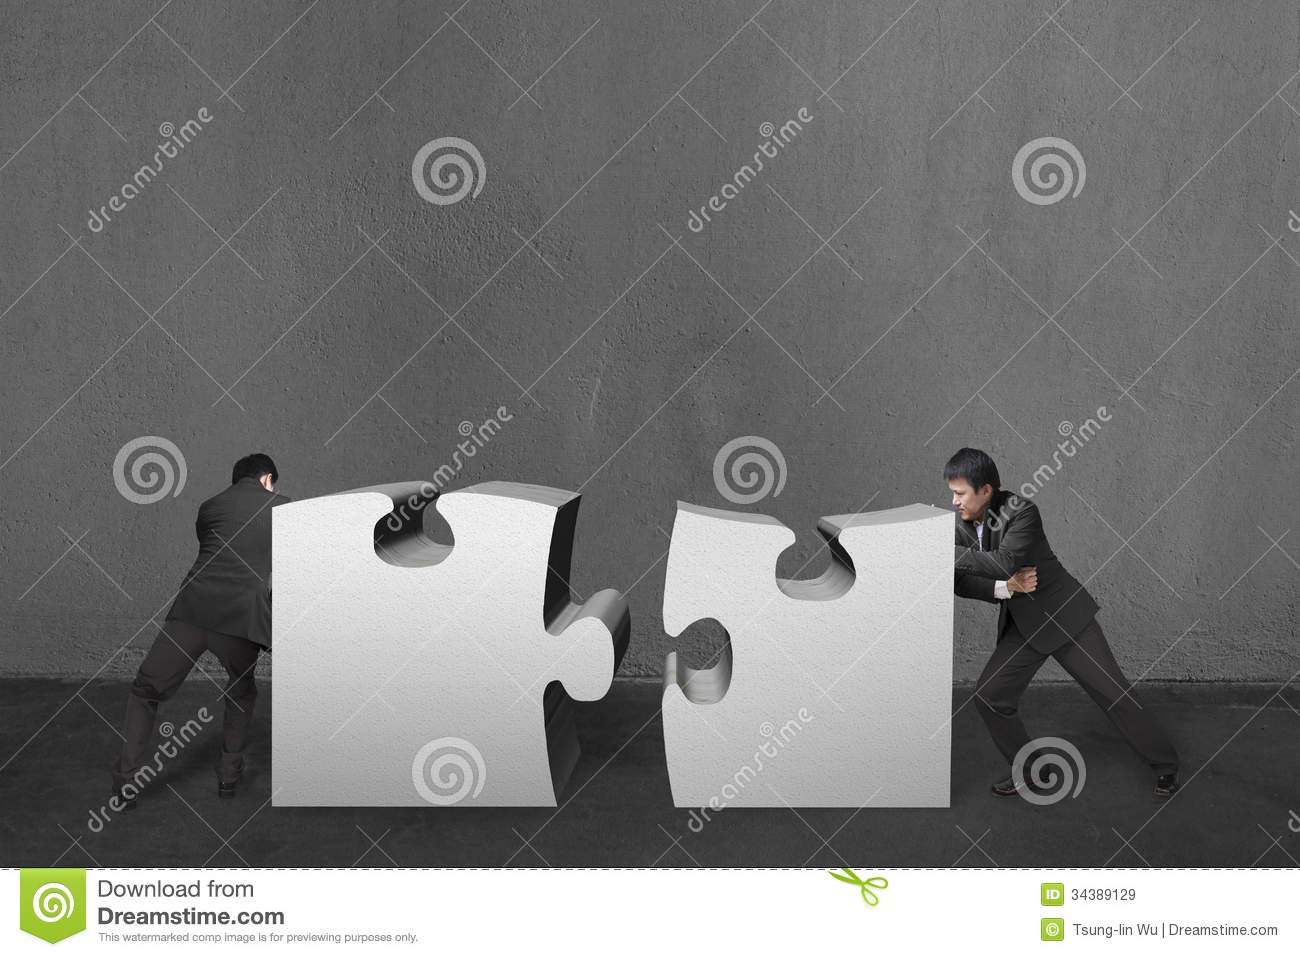 Concrete Push Wall Design : Businessmen push two heavy puzzles together in concrete